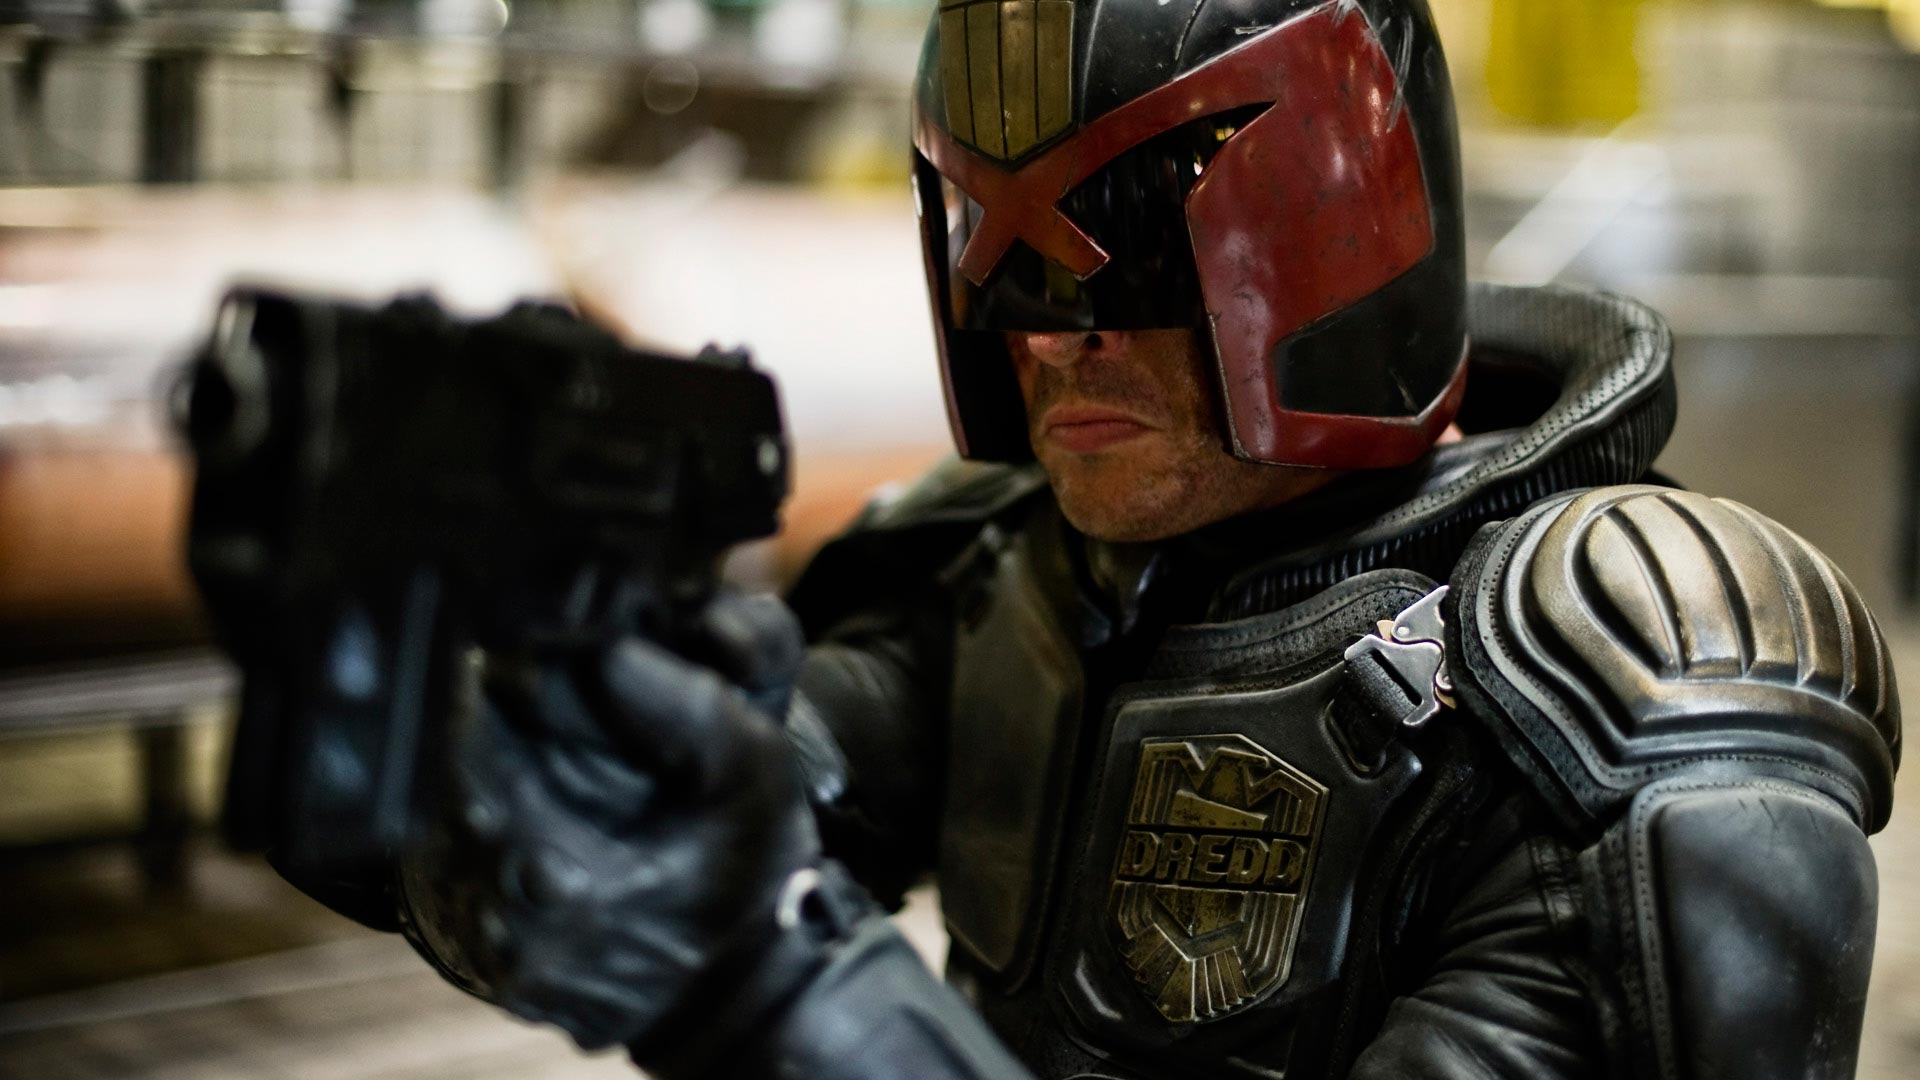 Dredd featured